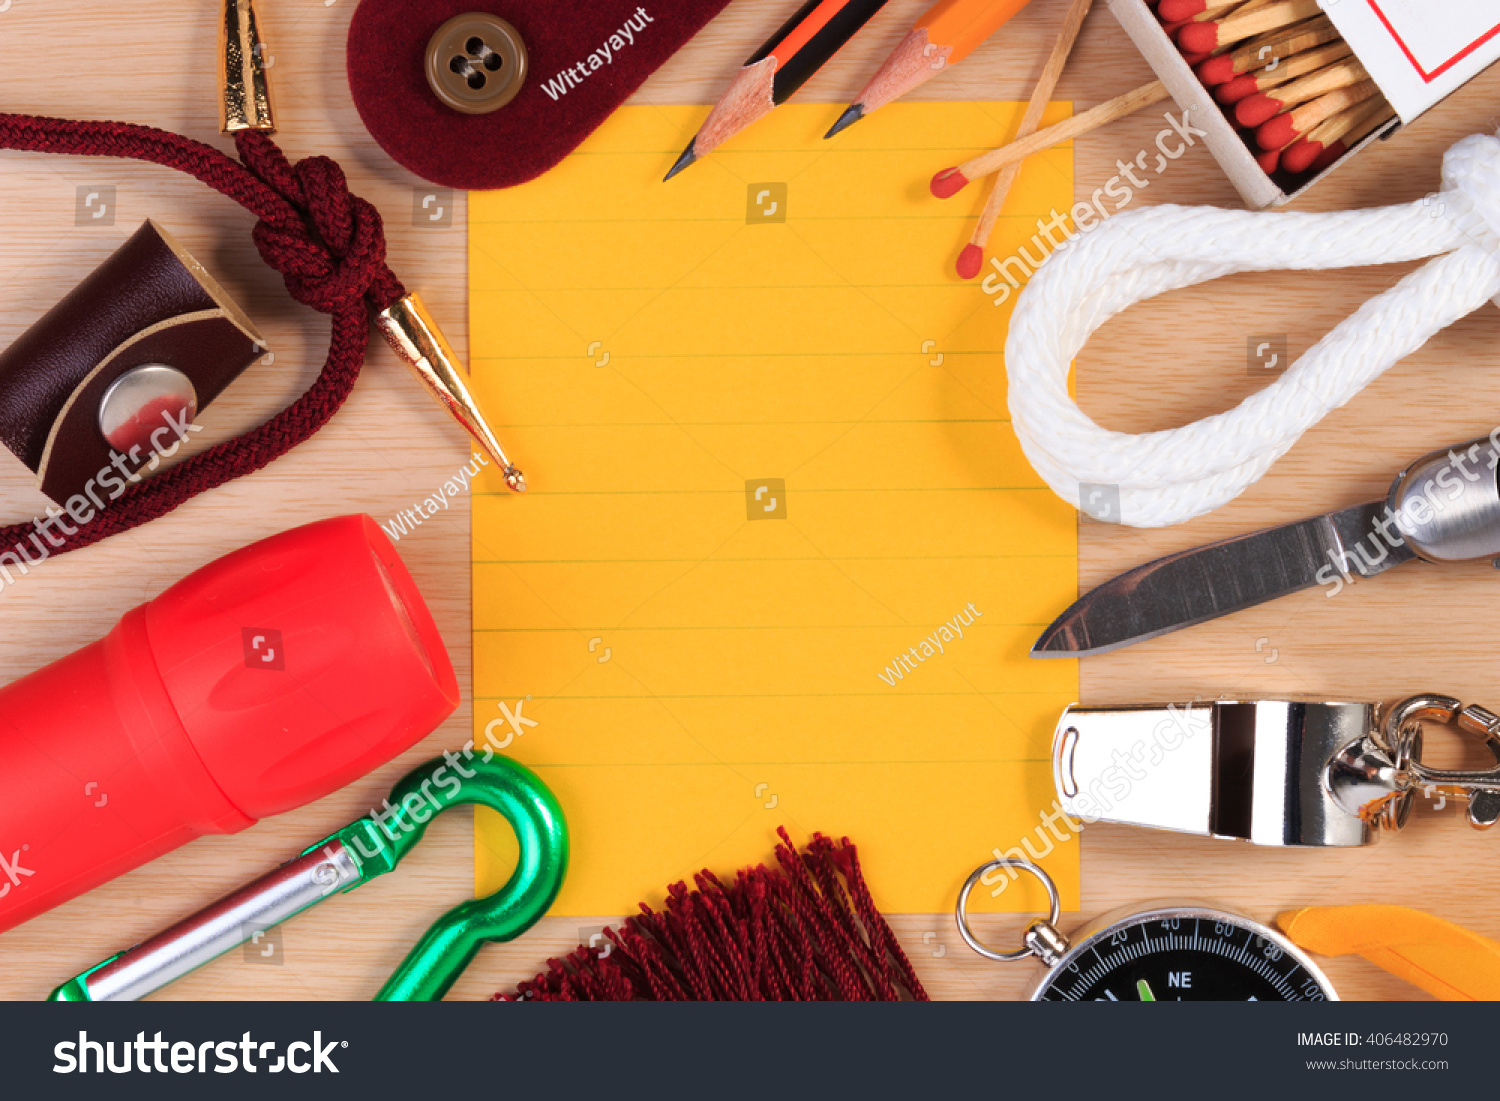 Set Various Boy Scout Camping Equipment Stock Photo 406482970